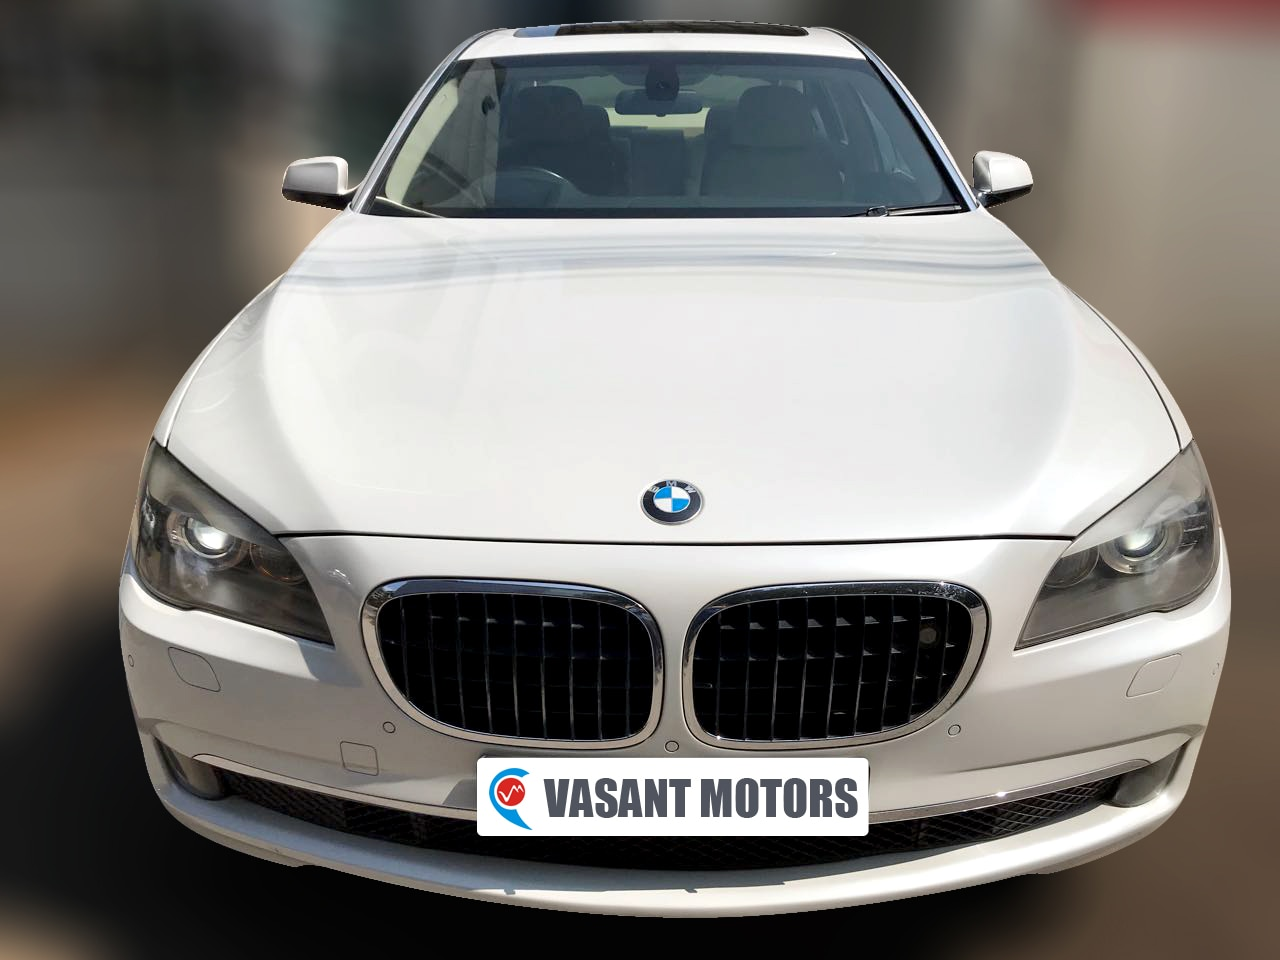 BMW 730LD (WHITE COLOR, DIESEL), 2009 model done only 53, 000km in absolute mint condition. For further info call 7569696666